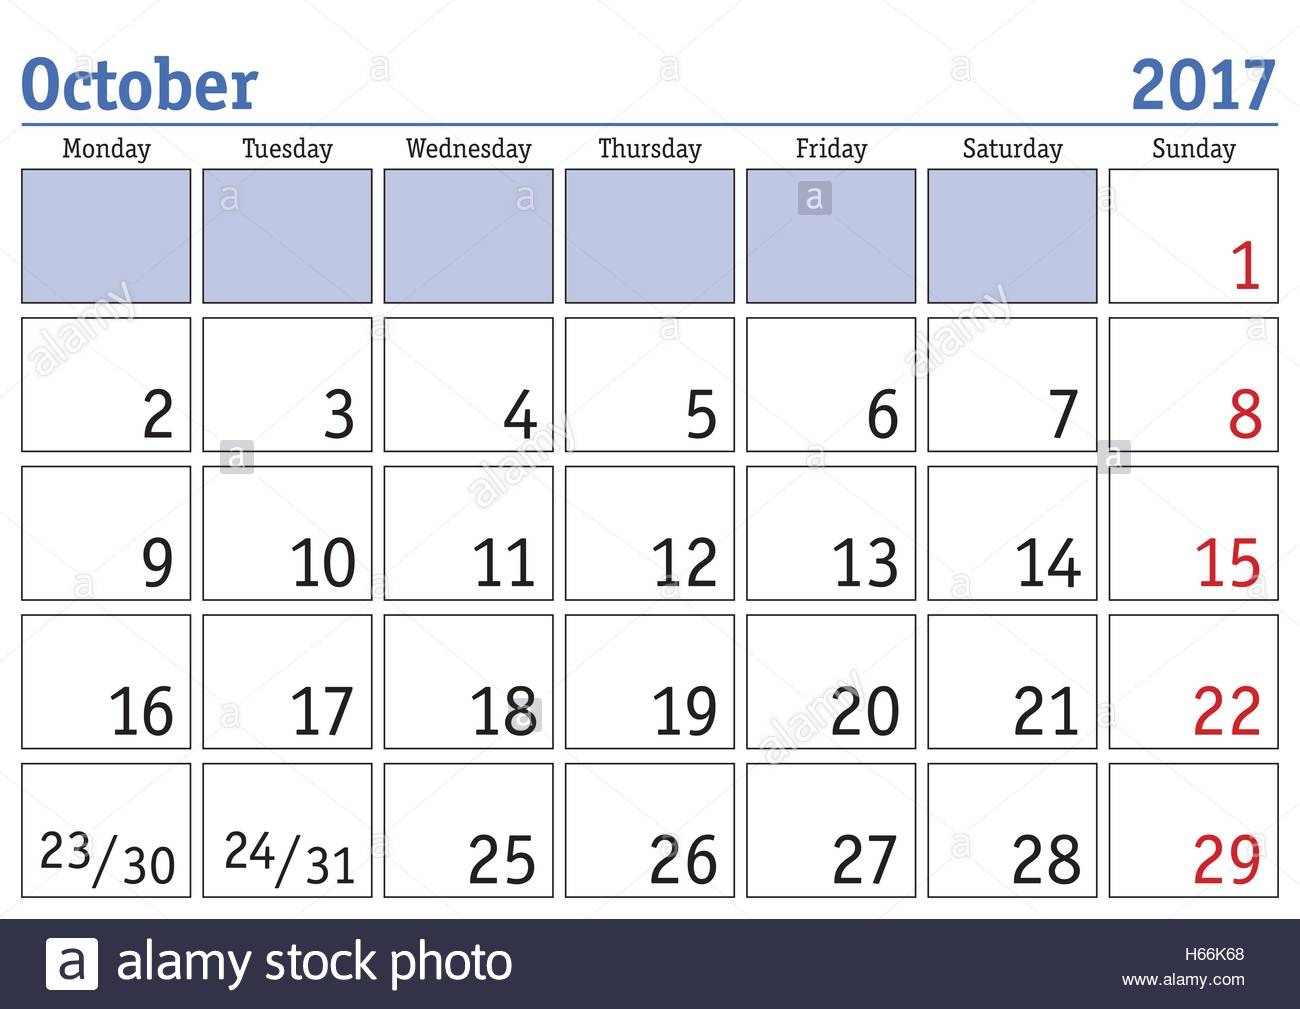 Simple Digital Calendar For October 2017. Vector Printable